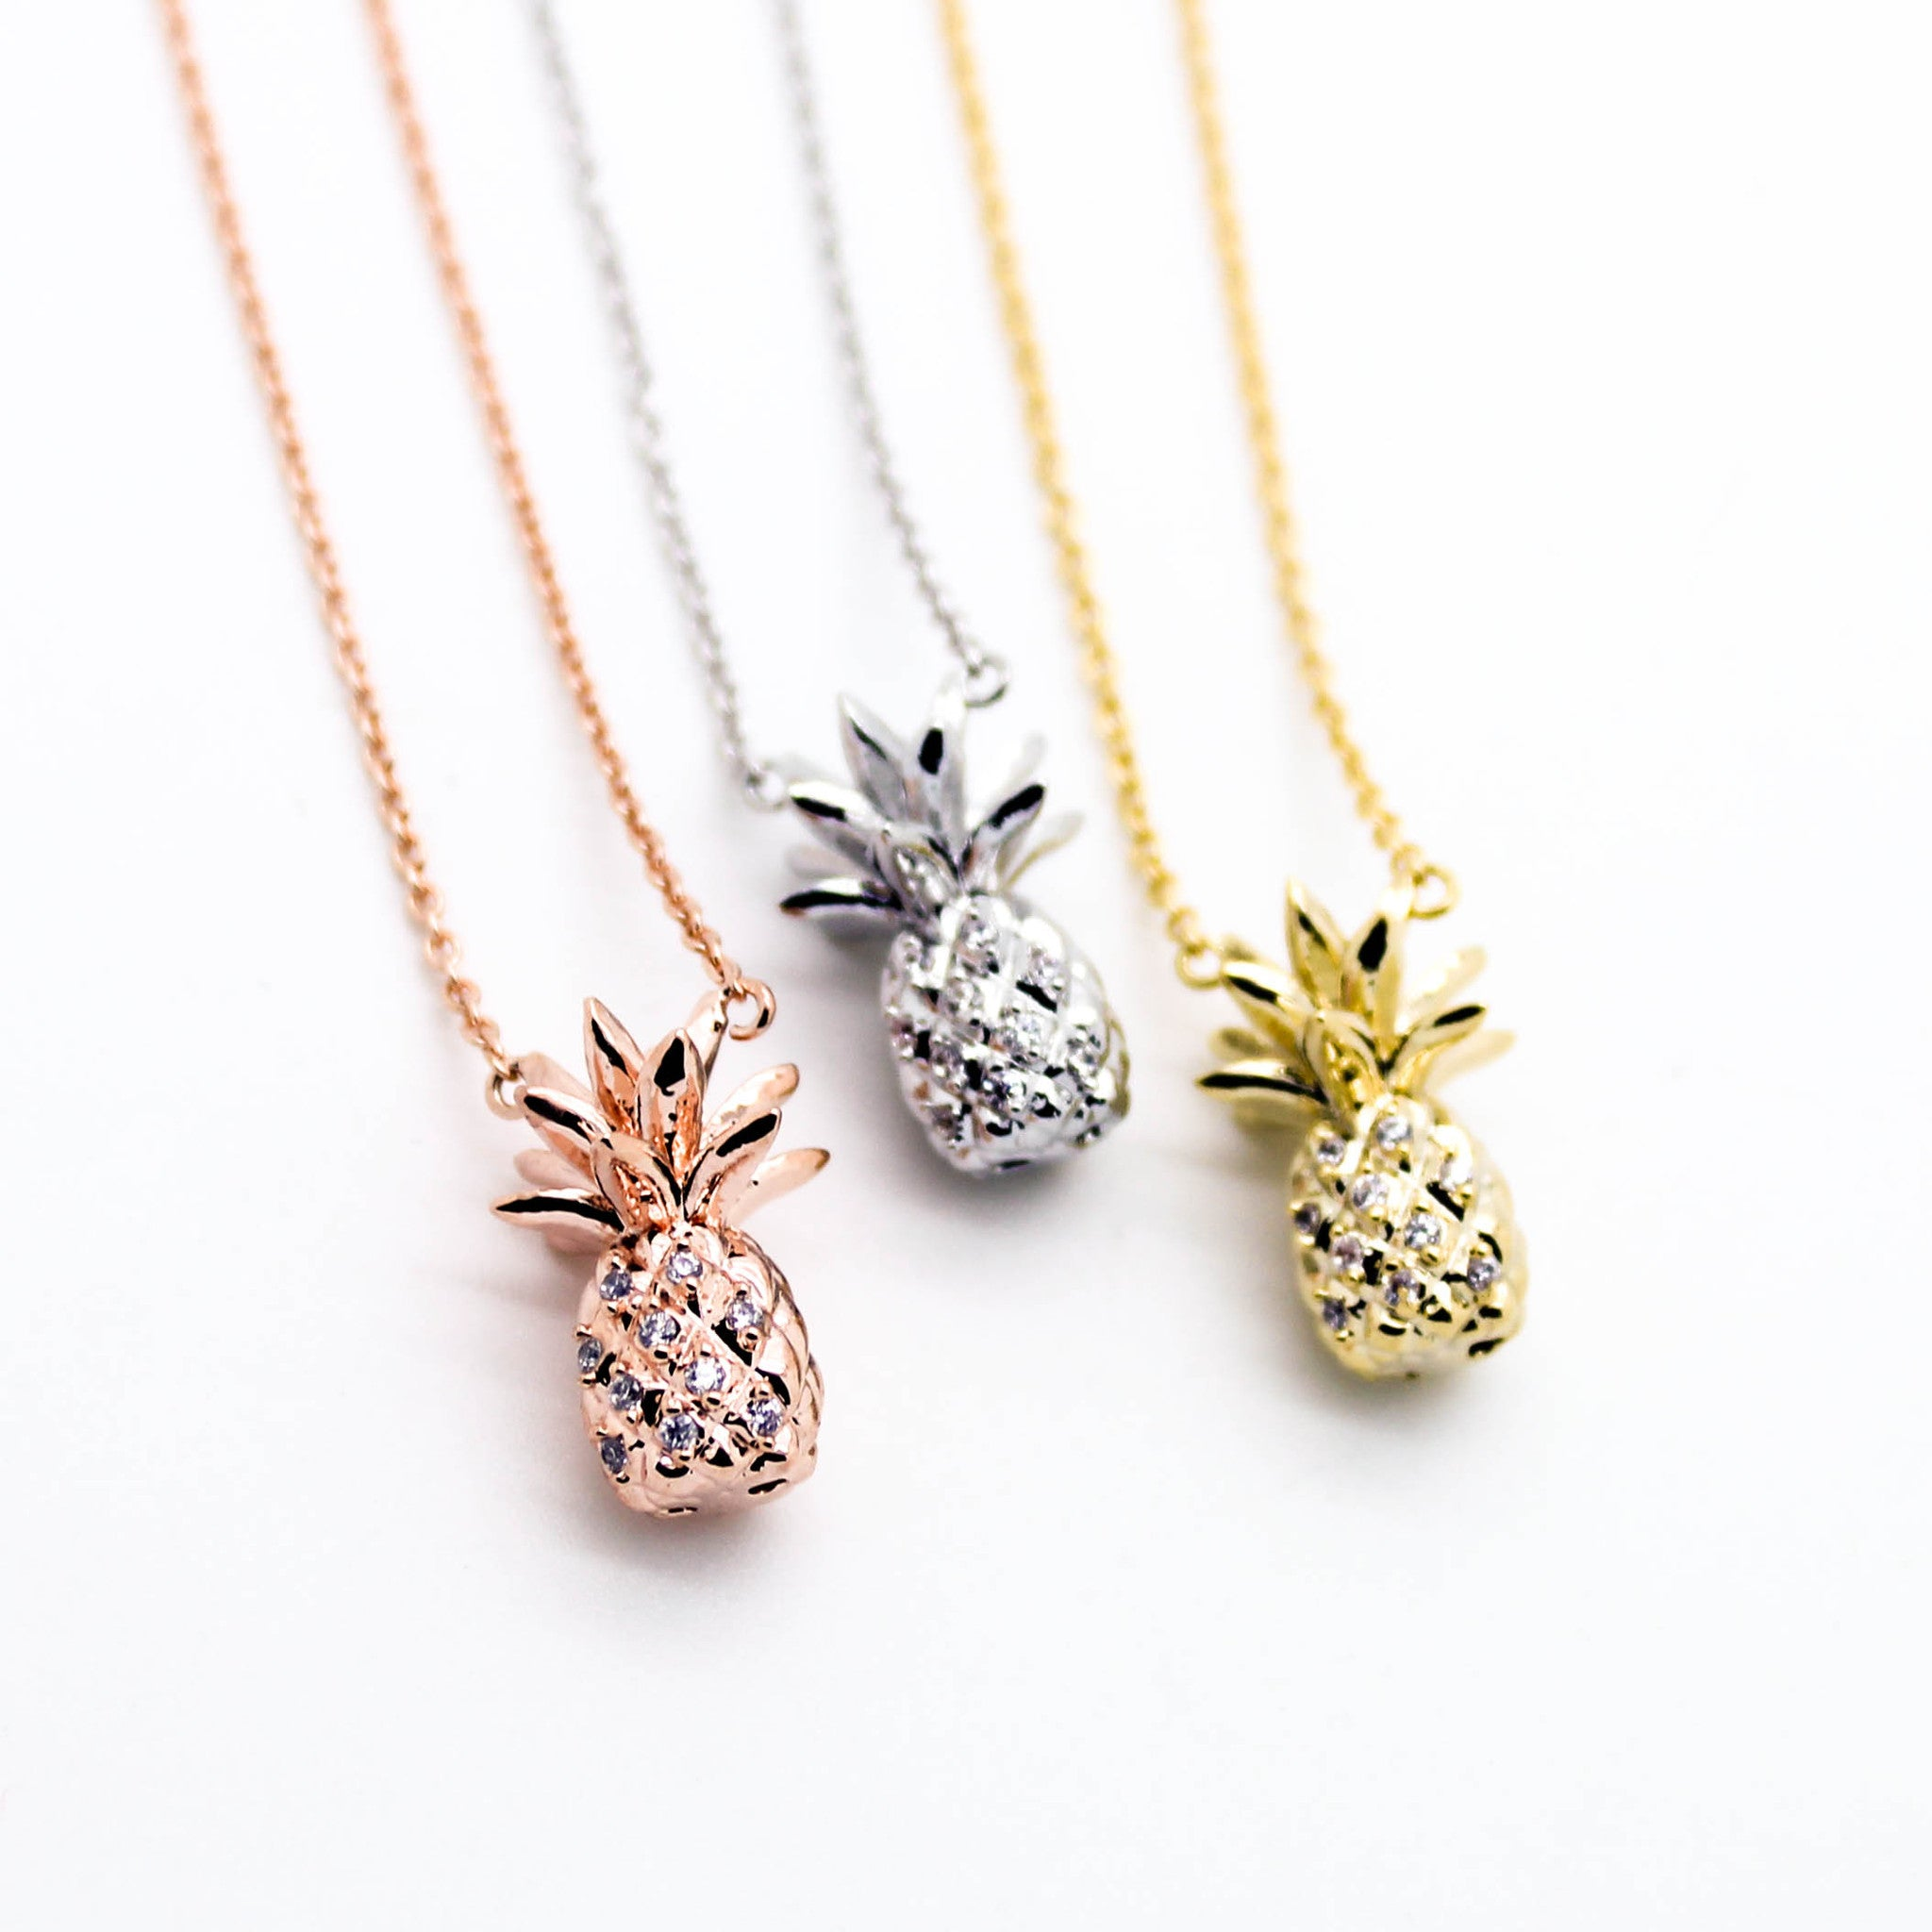 offset jewelry necklaces drift hawaii c gp pineapple necklace shop ocean